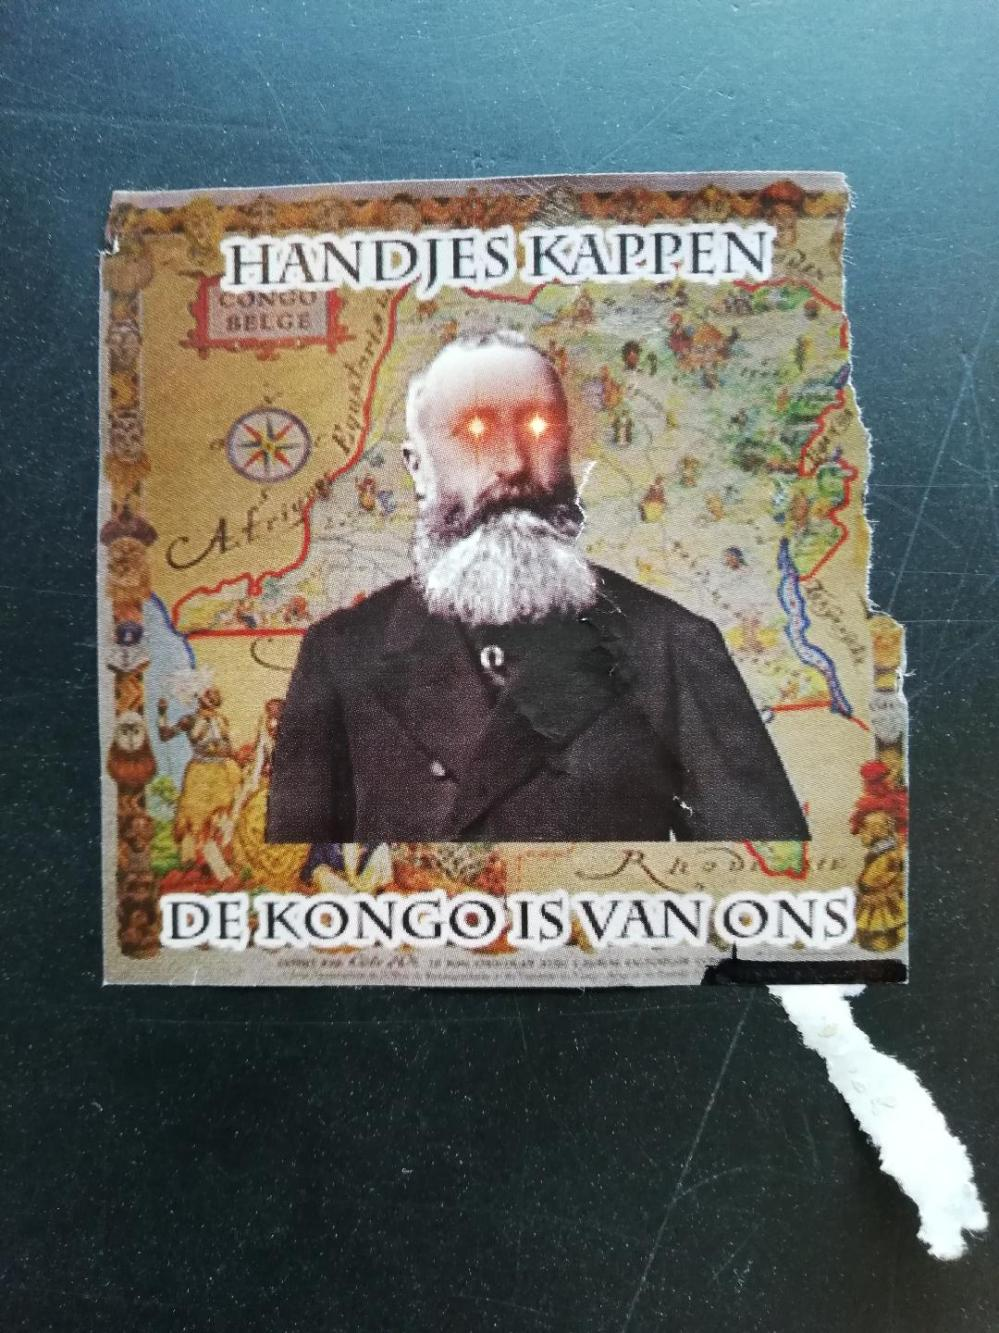 Handjes kappen de Congo is van ons (sticker in SJC)